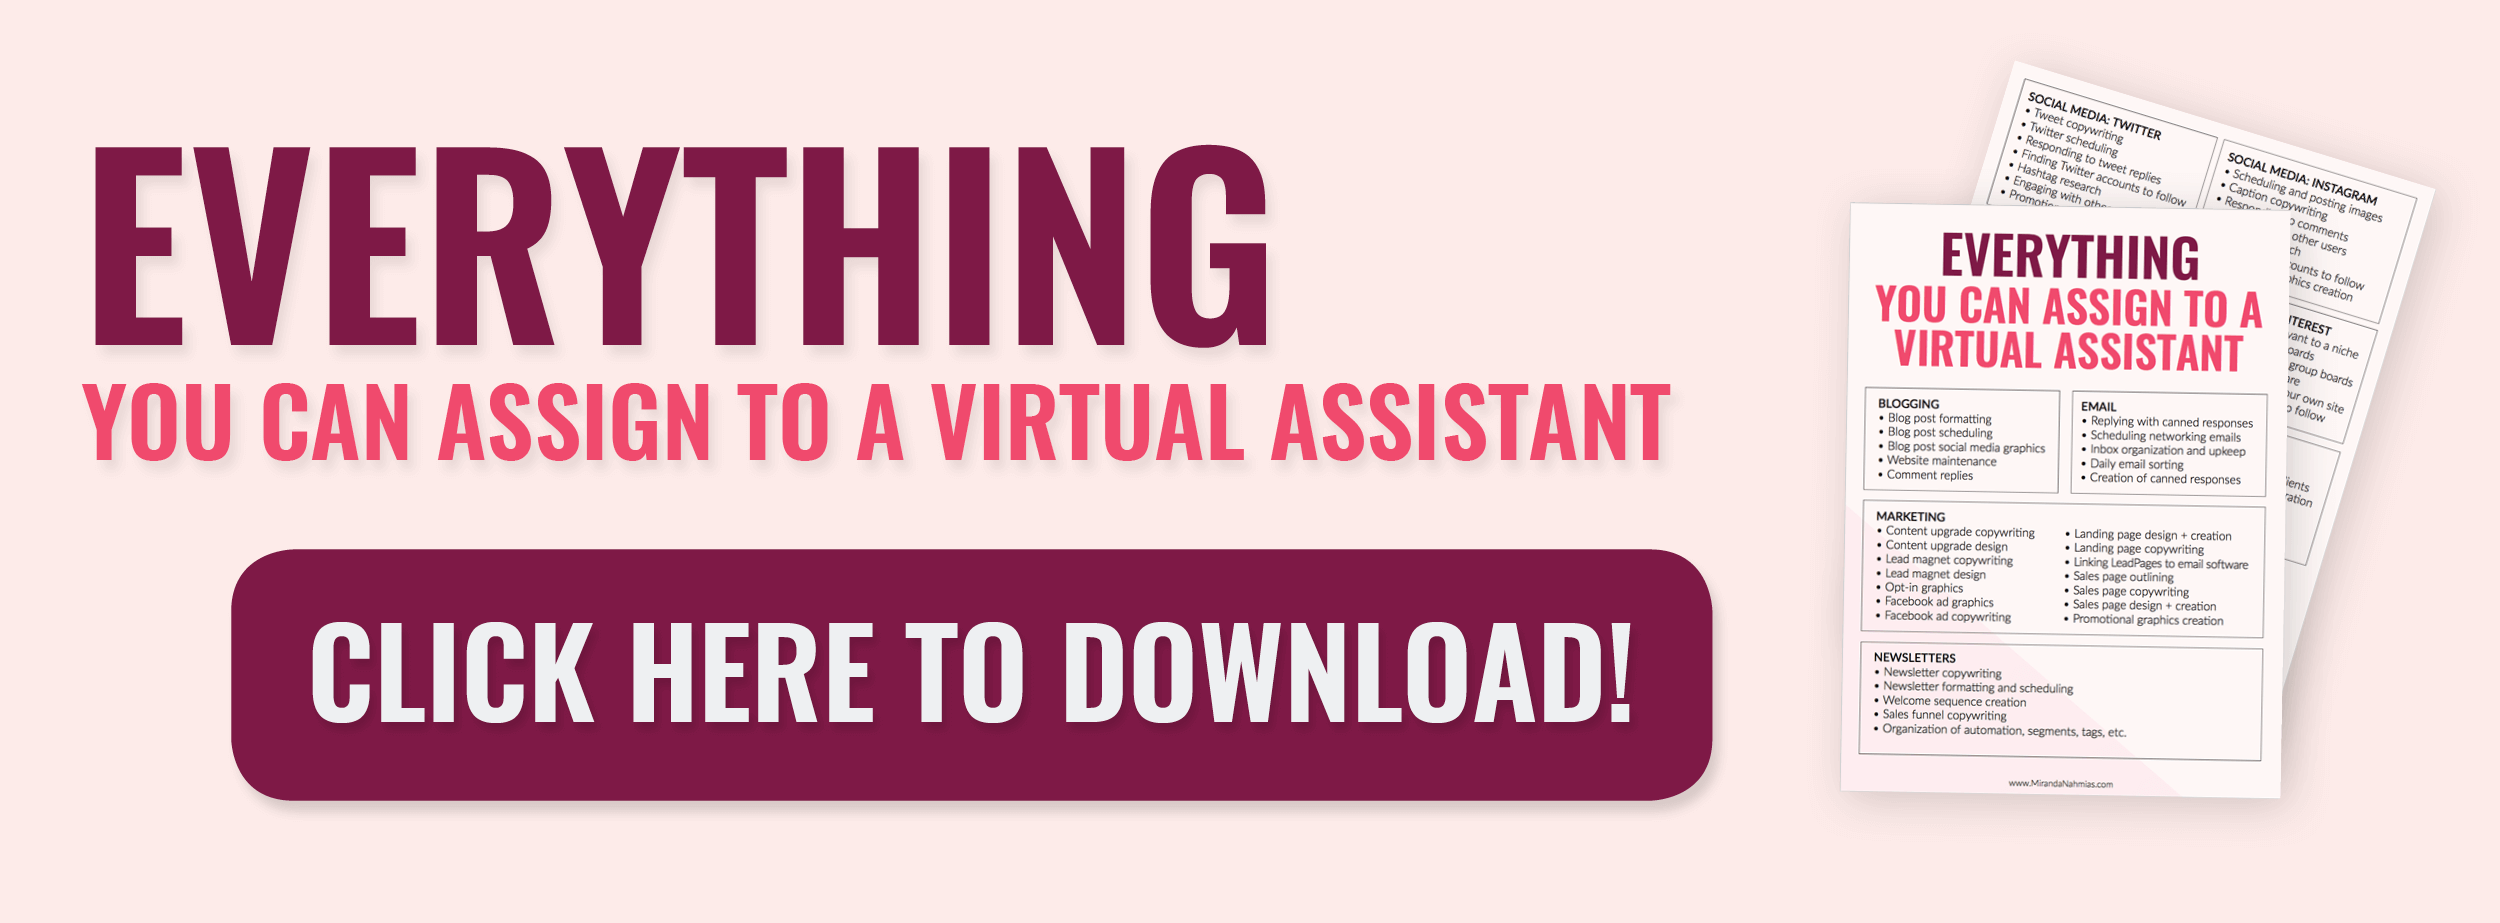 Everything You Can Assign to a Virtual Assistant